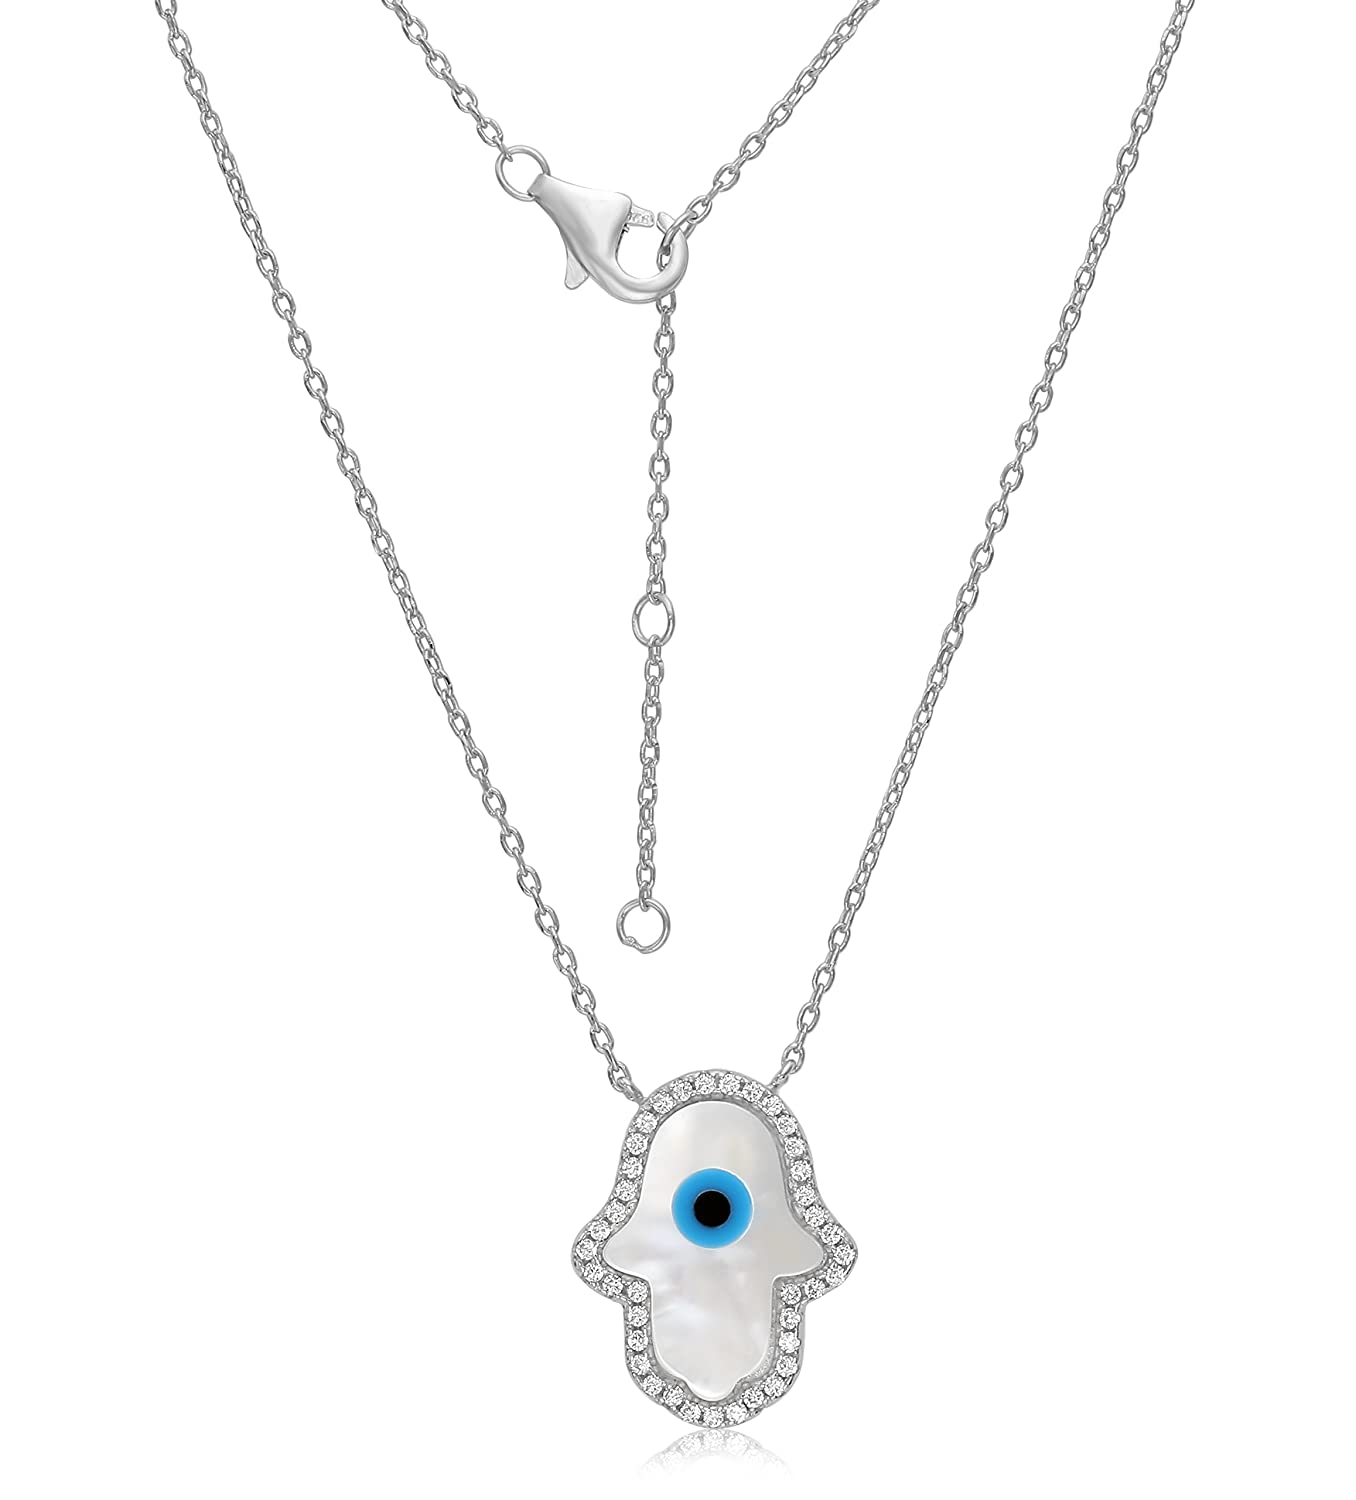 Unique Royal Jewelry Hamsa Hand Sterling Silver Cubic Zirconia Evil Eye Necklace – Platinum Plated – Expands from 16 -18